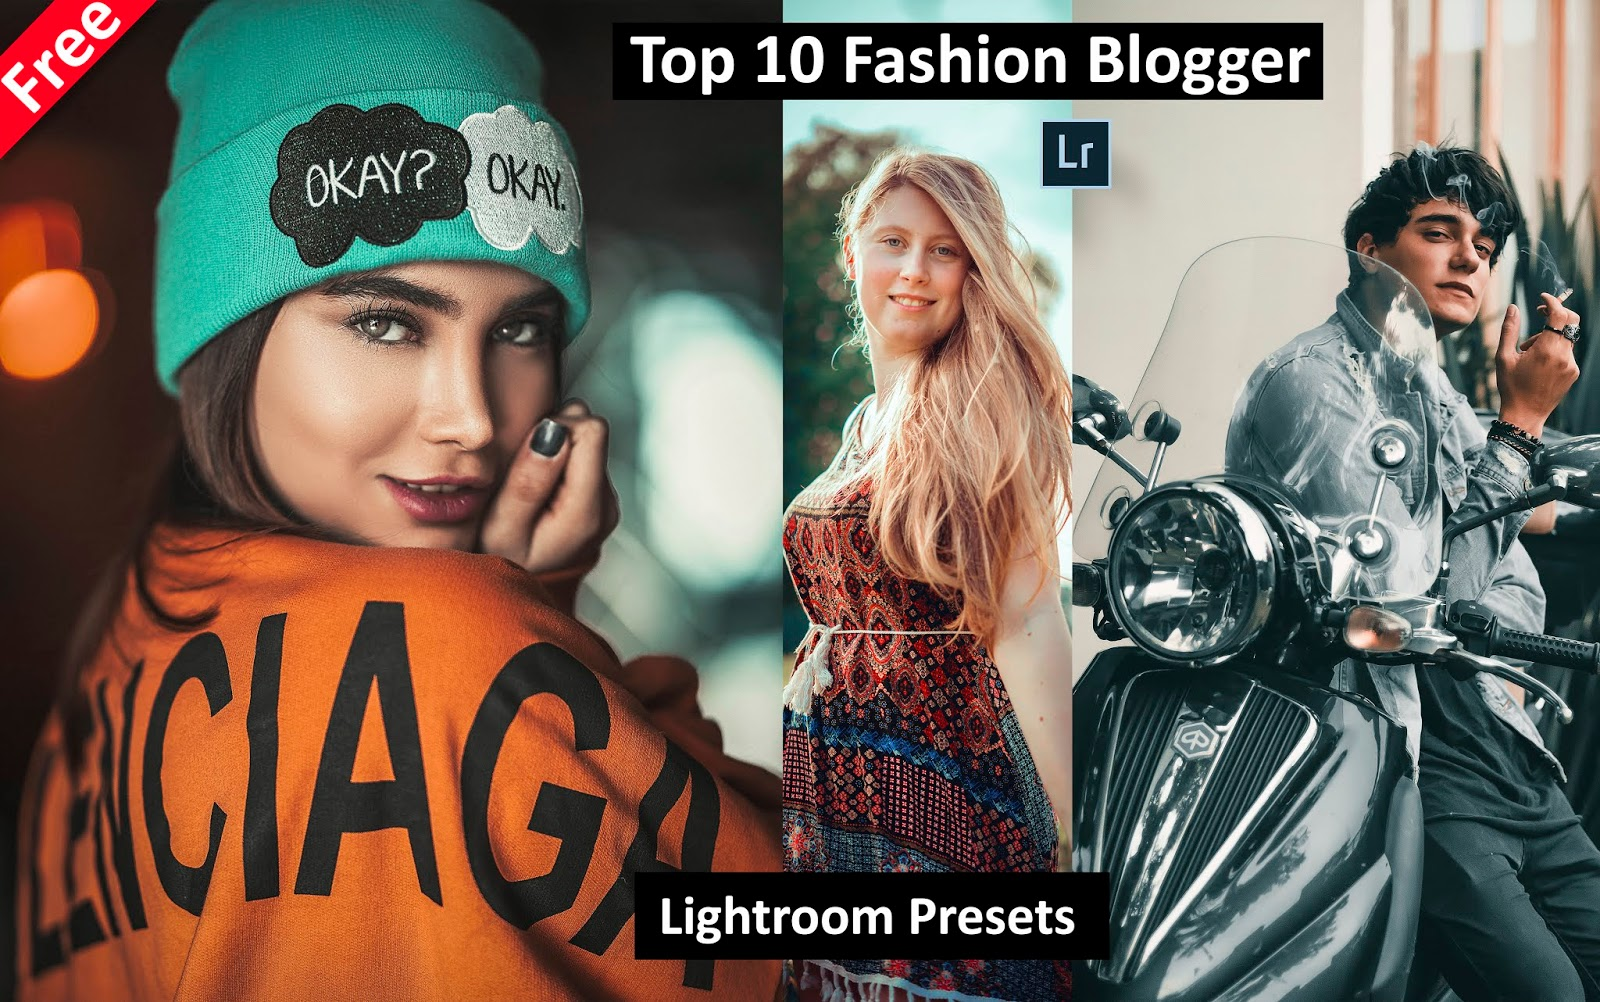 Download Top 10 Fashion Blogger Lightroom Presets for Free | How to Edit Fashion Portraits in Lightroom